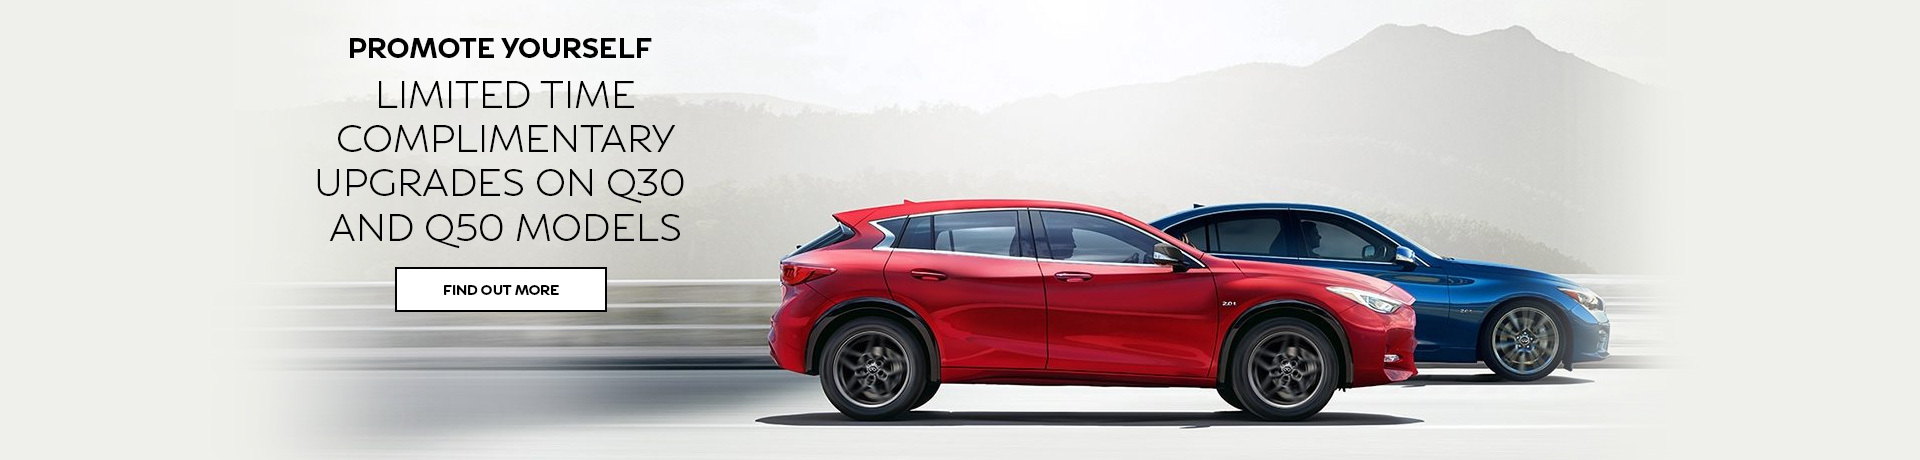 Infiniti - National Offer - $7,000 Complimentary Model Upgrade on Q30 or $8,000